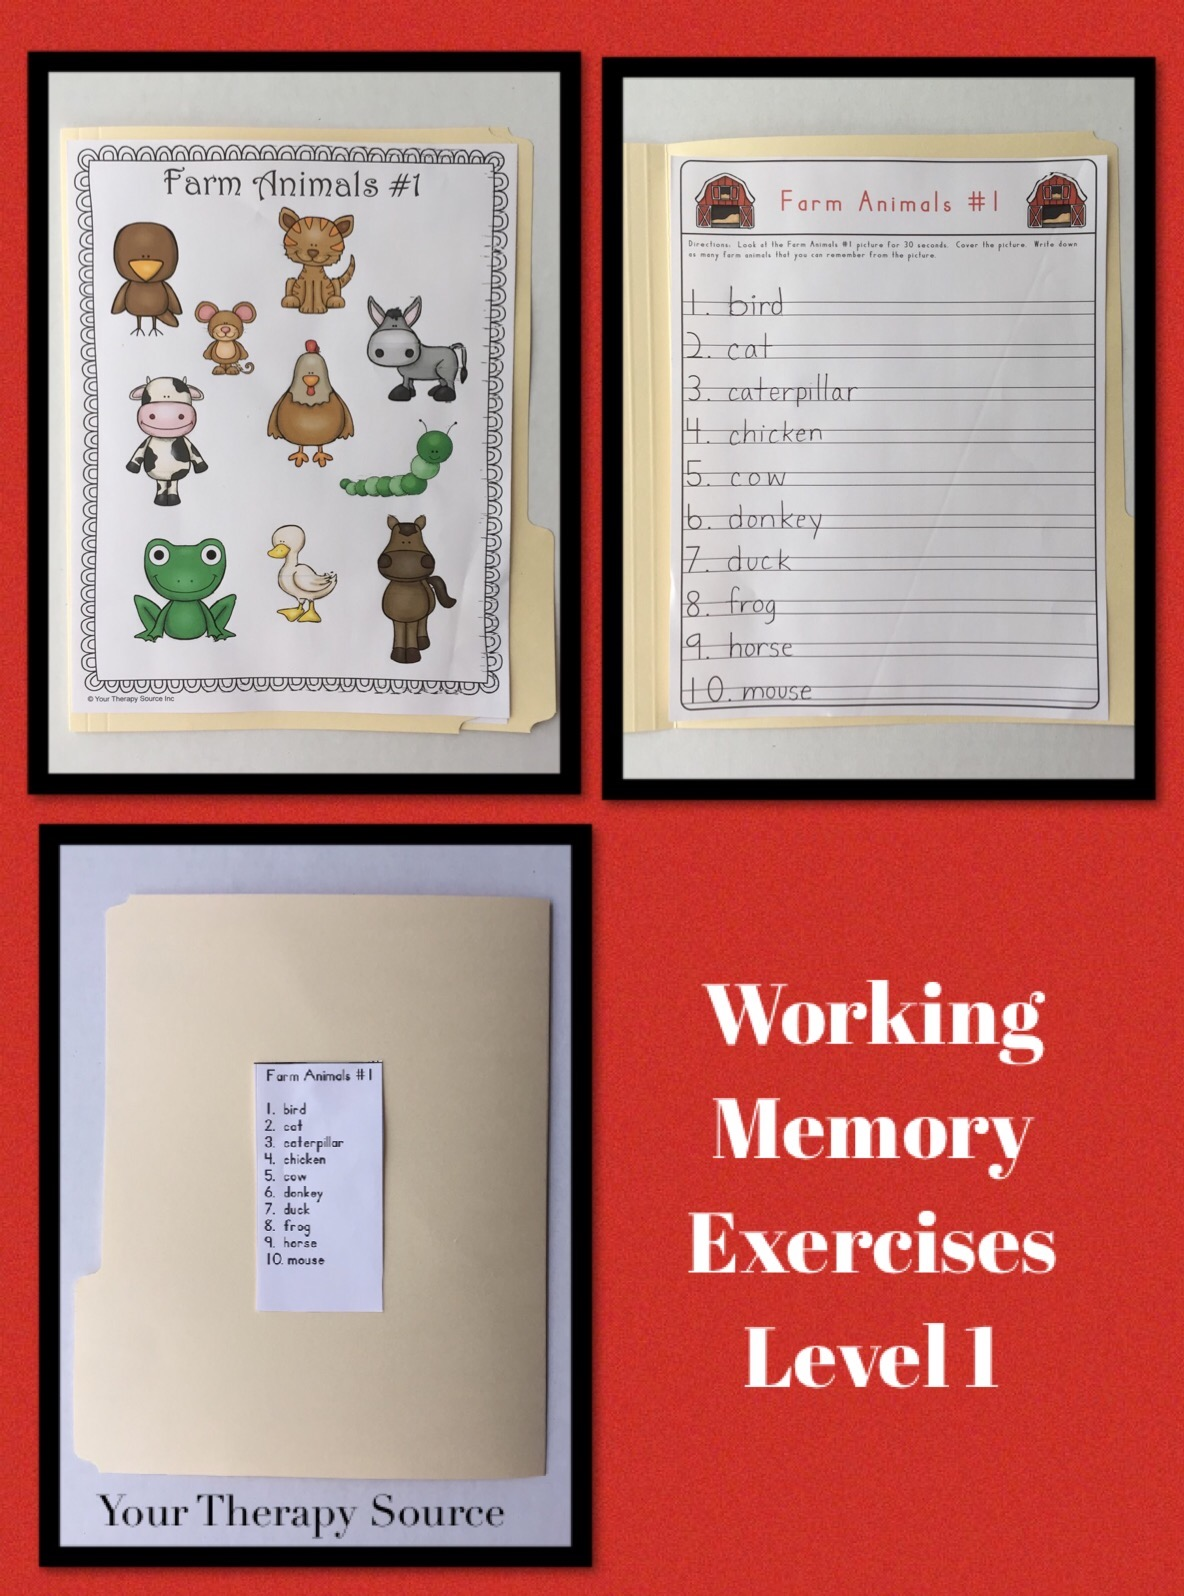 Q&A: Looking for Free Worksheets for Memory, Decision Making and Planning -  Your Therapy Source